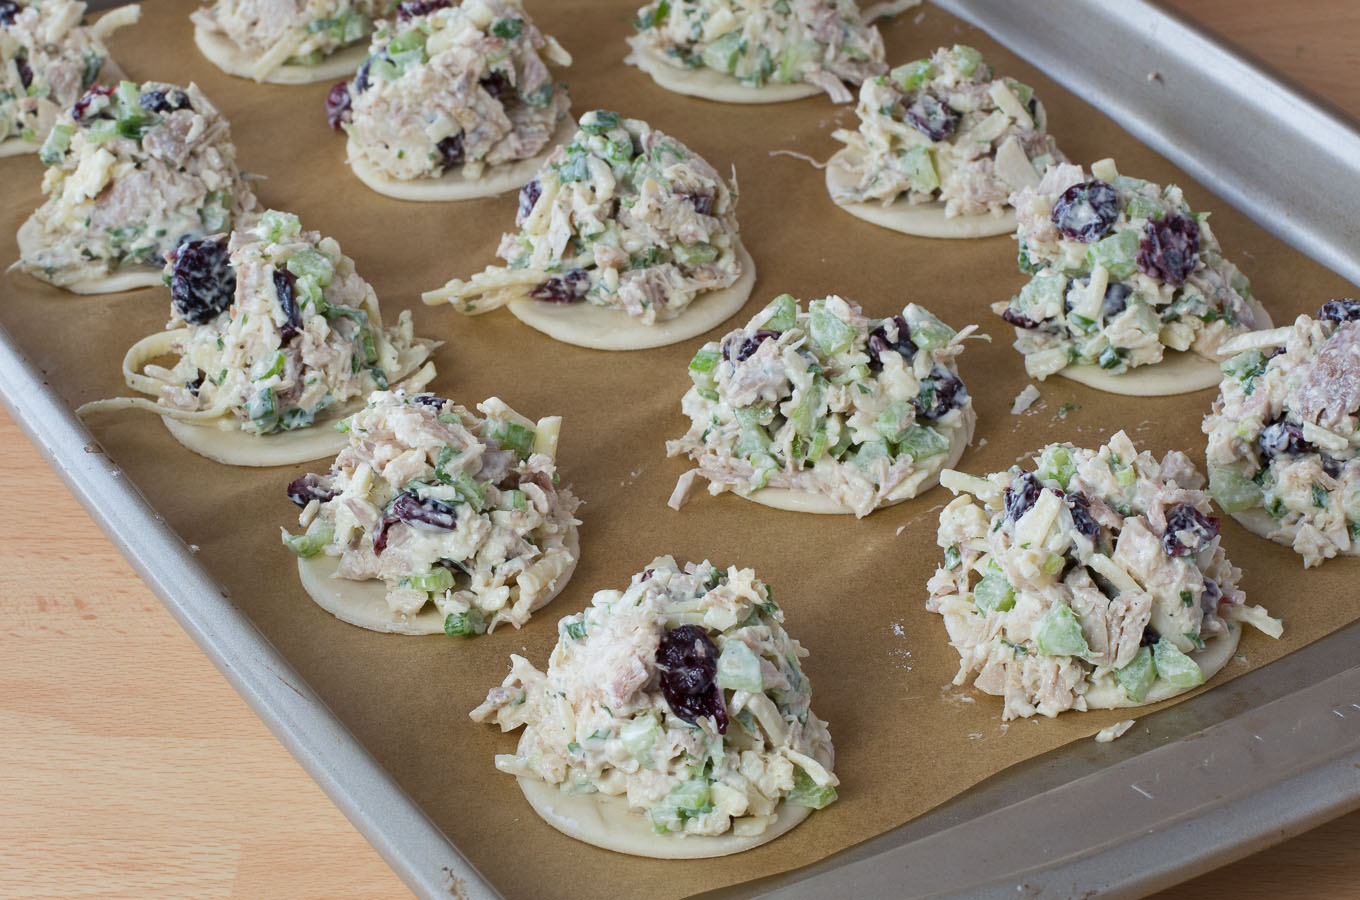 Bites of puffed pastry topped with turkey salad mix and cranberries.